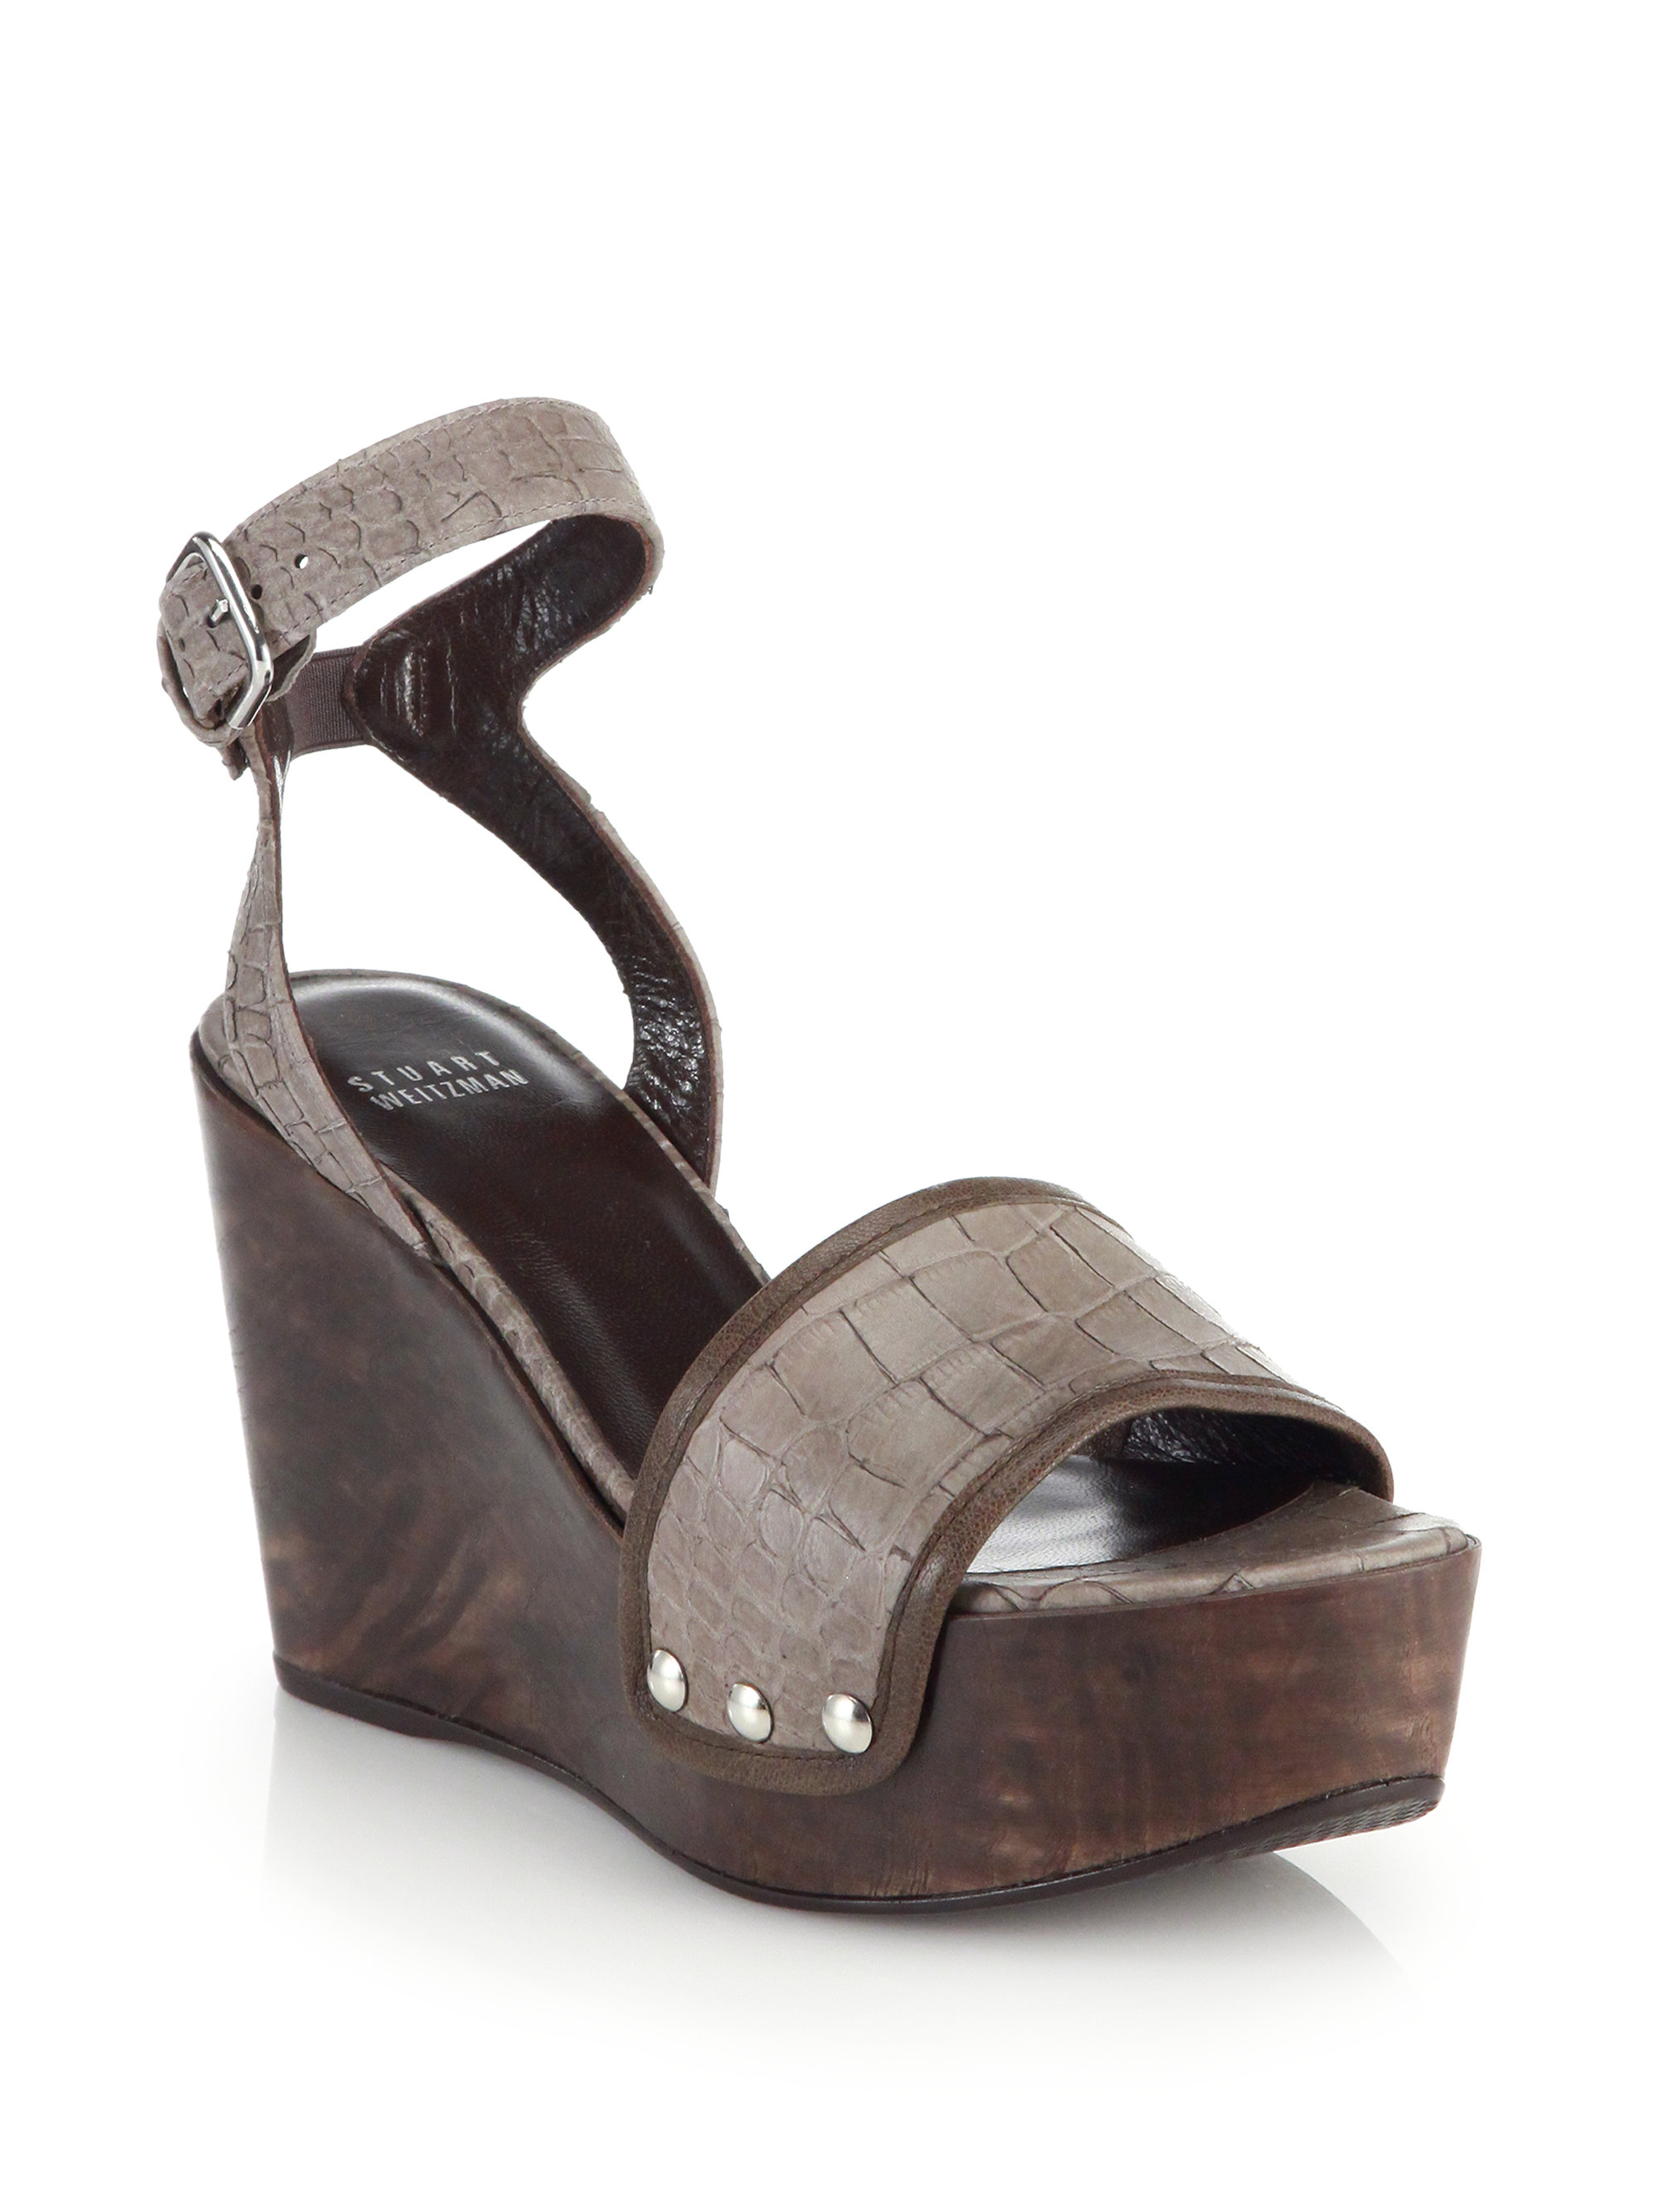 Stuart Weitzman Embossed Leather Wedge Sandals new arrival sale online visit new low cost sale online view cheap online clearance discount Ssa6UX